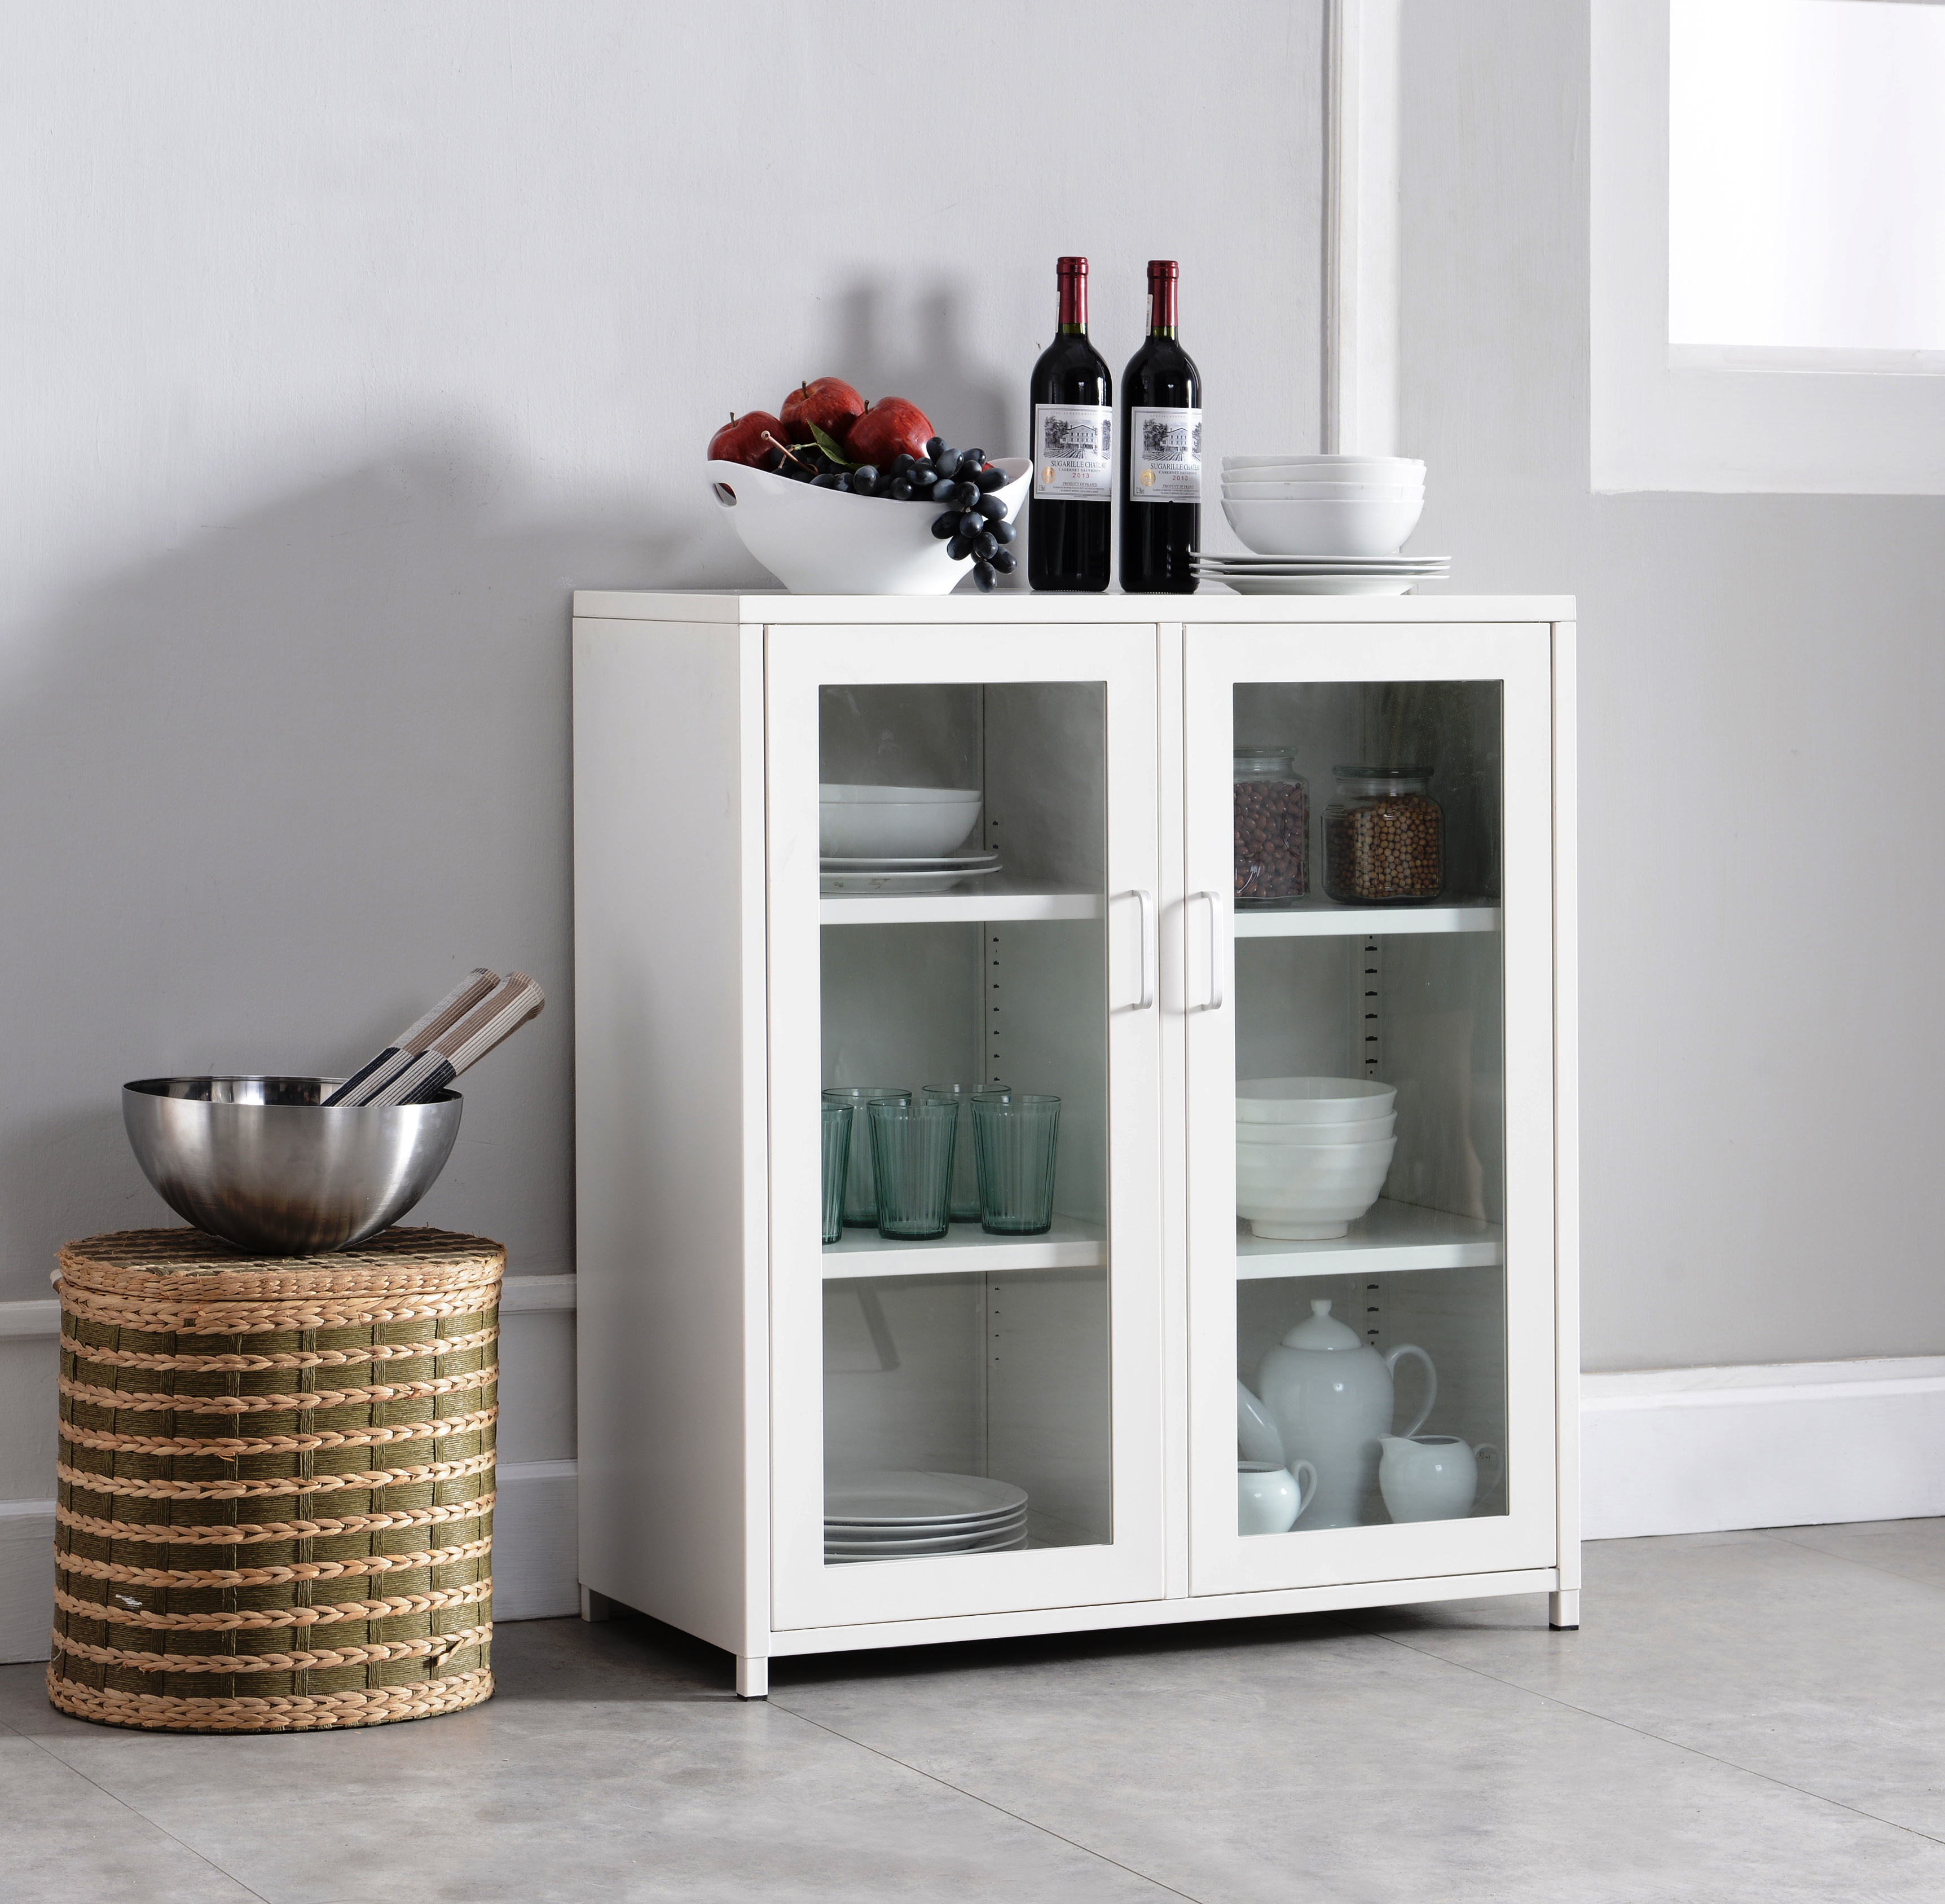 Markle White Iron Transitional Kitchen Storage Accent Cabinet Buffet With 2  Glass Doors & Shelves For Buffets With Bottle And Glass Storage (View 12 of 20)